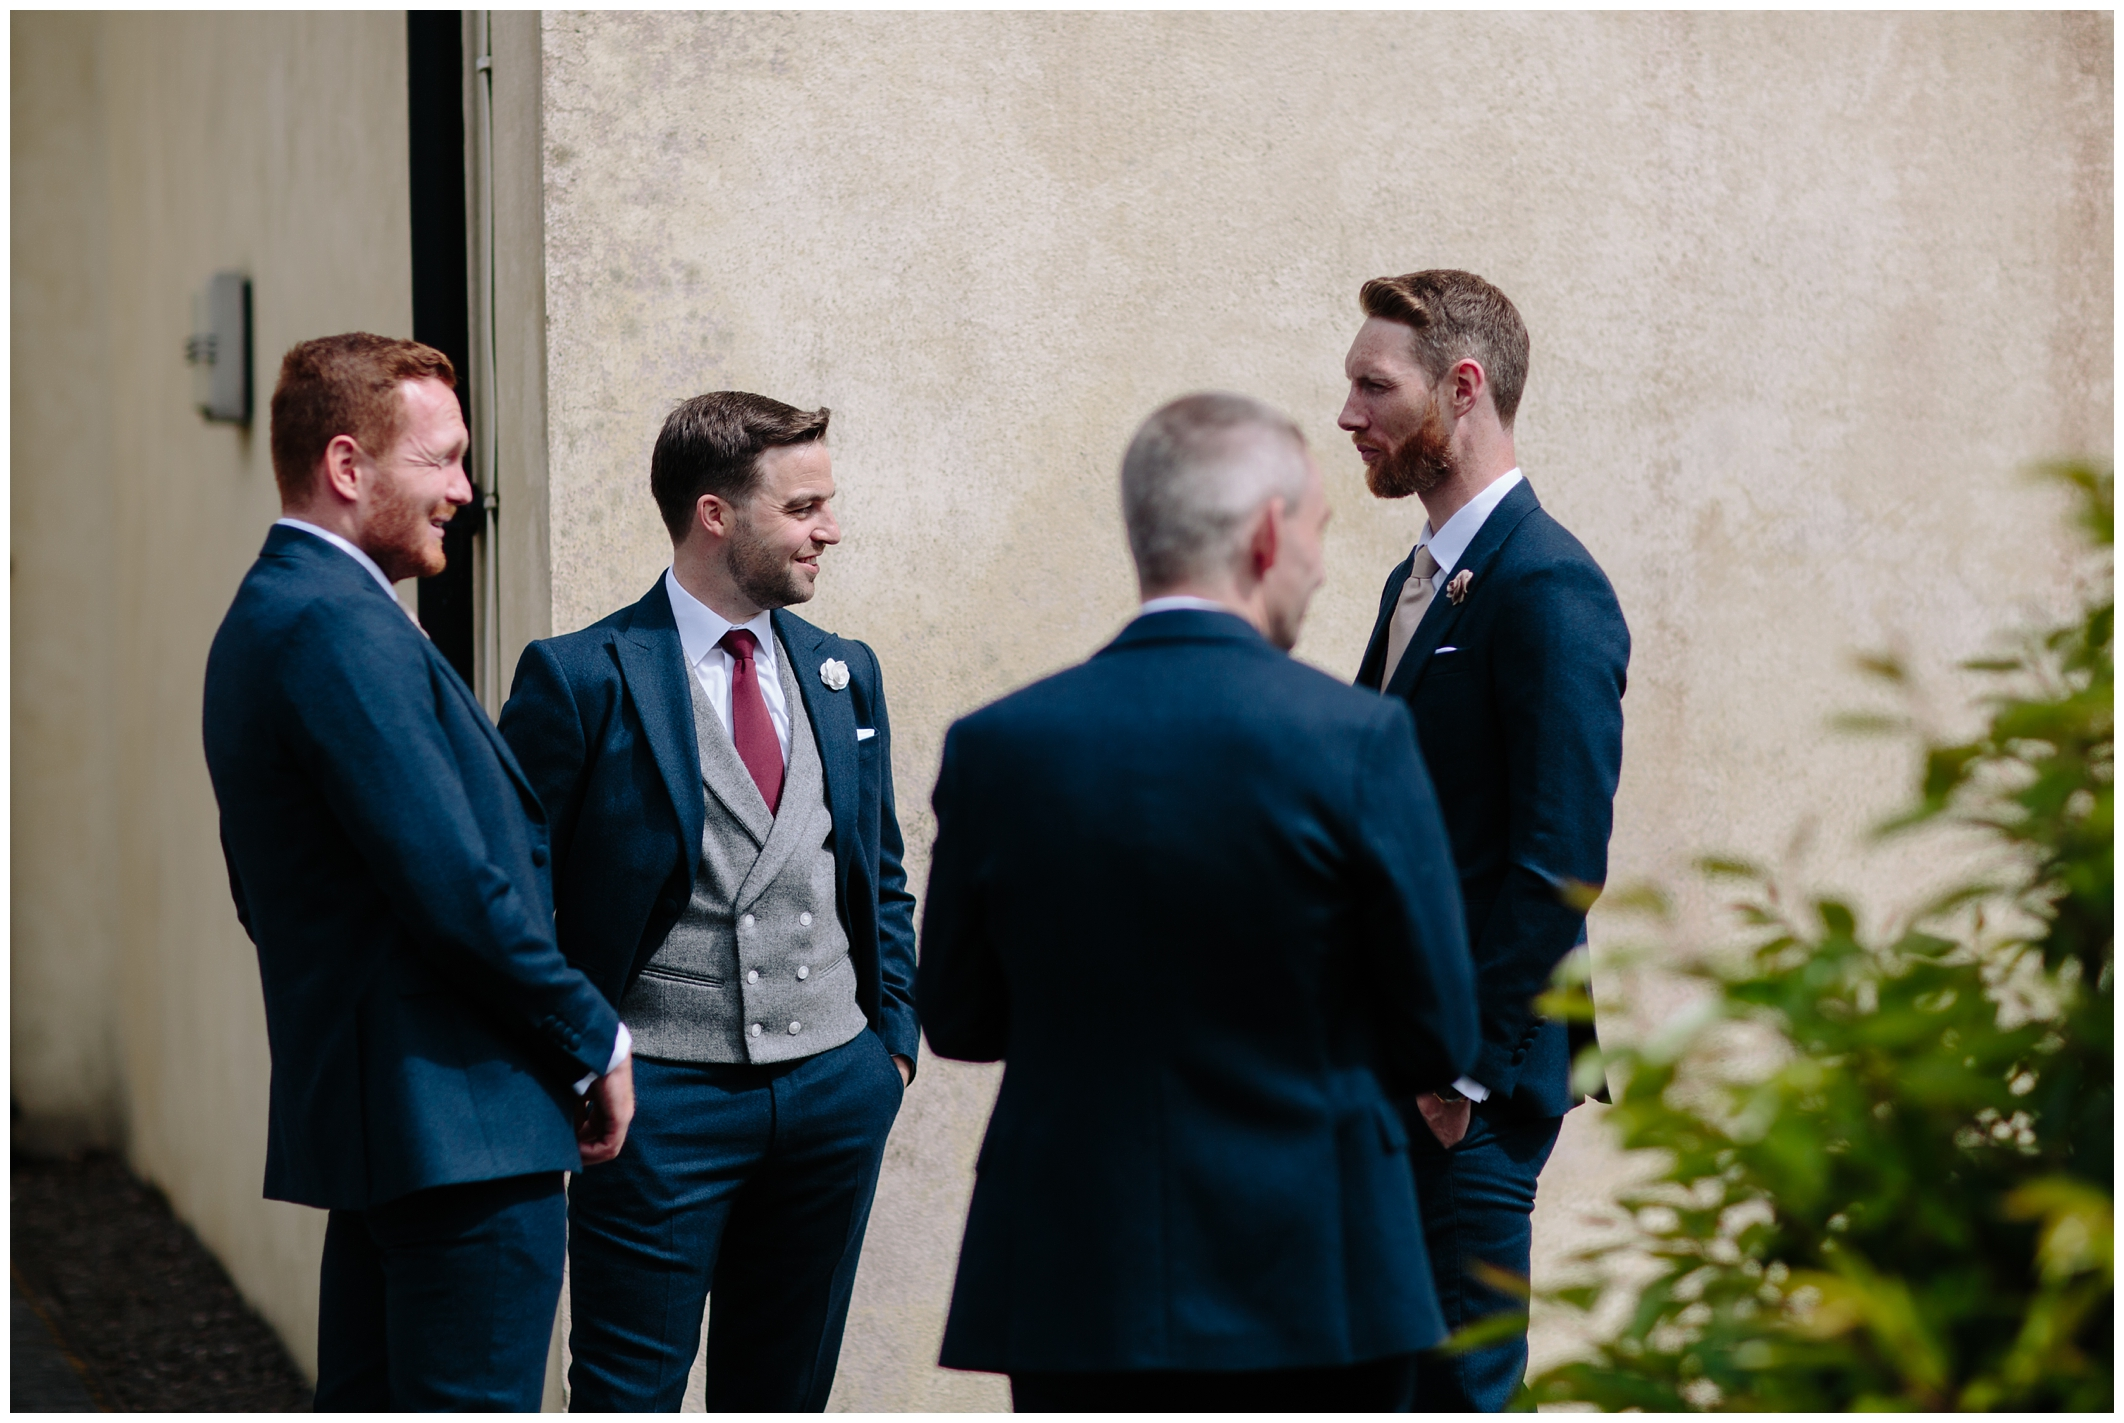 sinead_emmet_farnham_estate_wedding_jude_browne_photography_0051.jpg